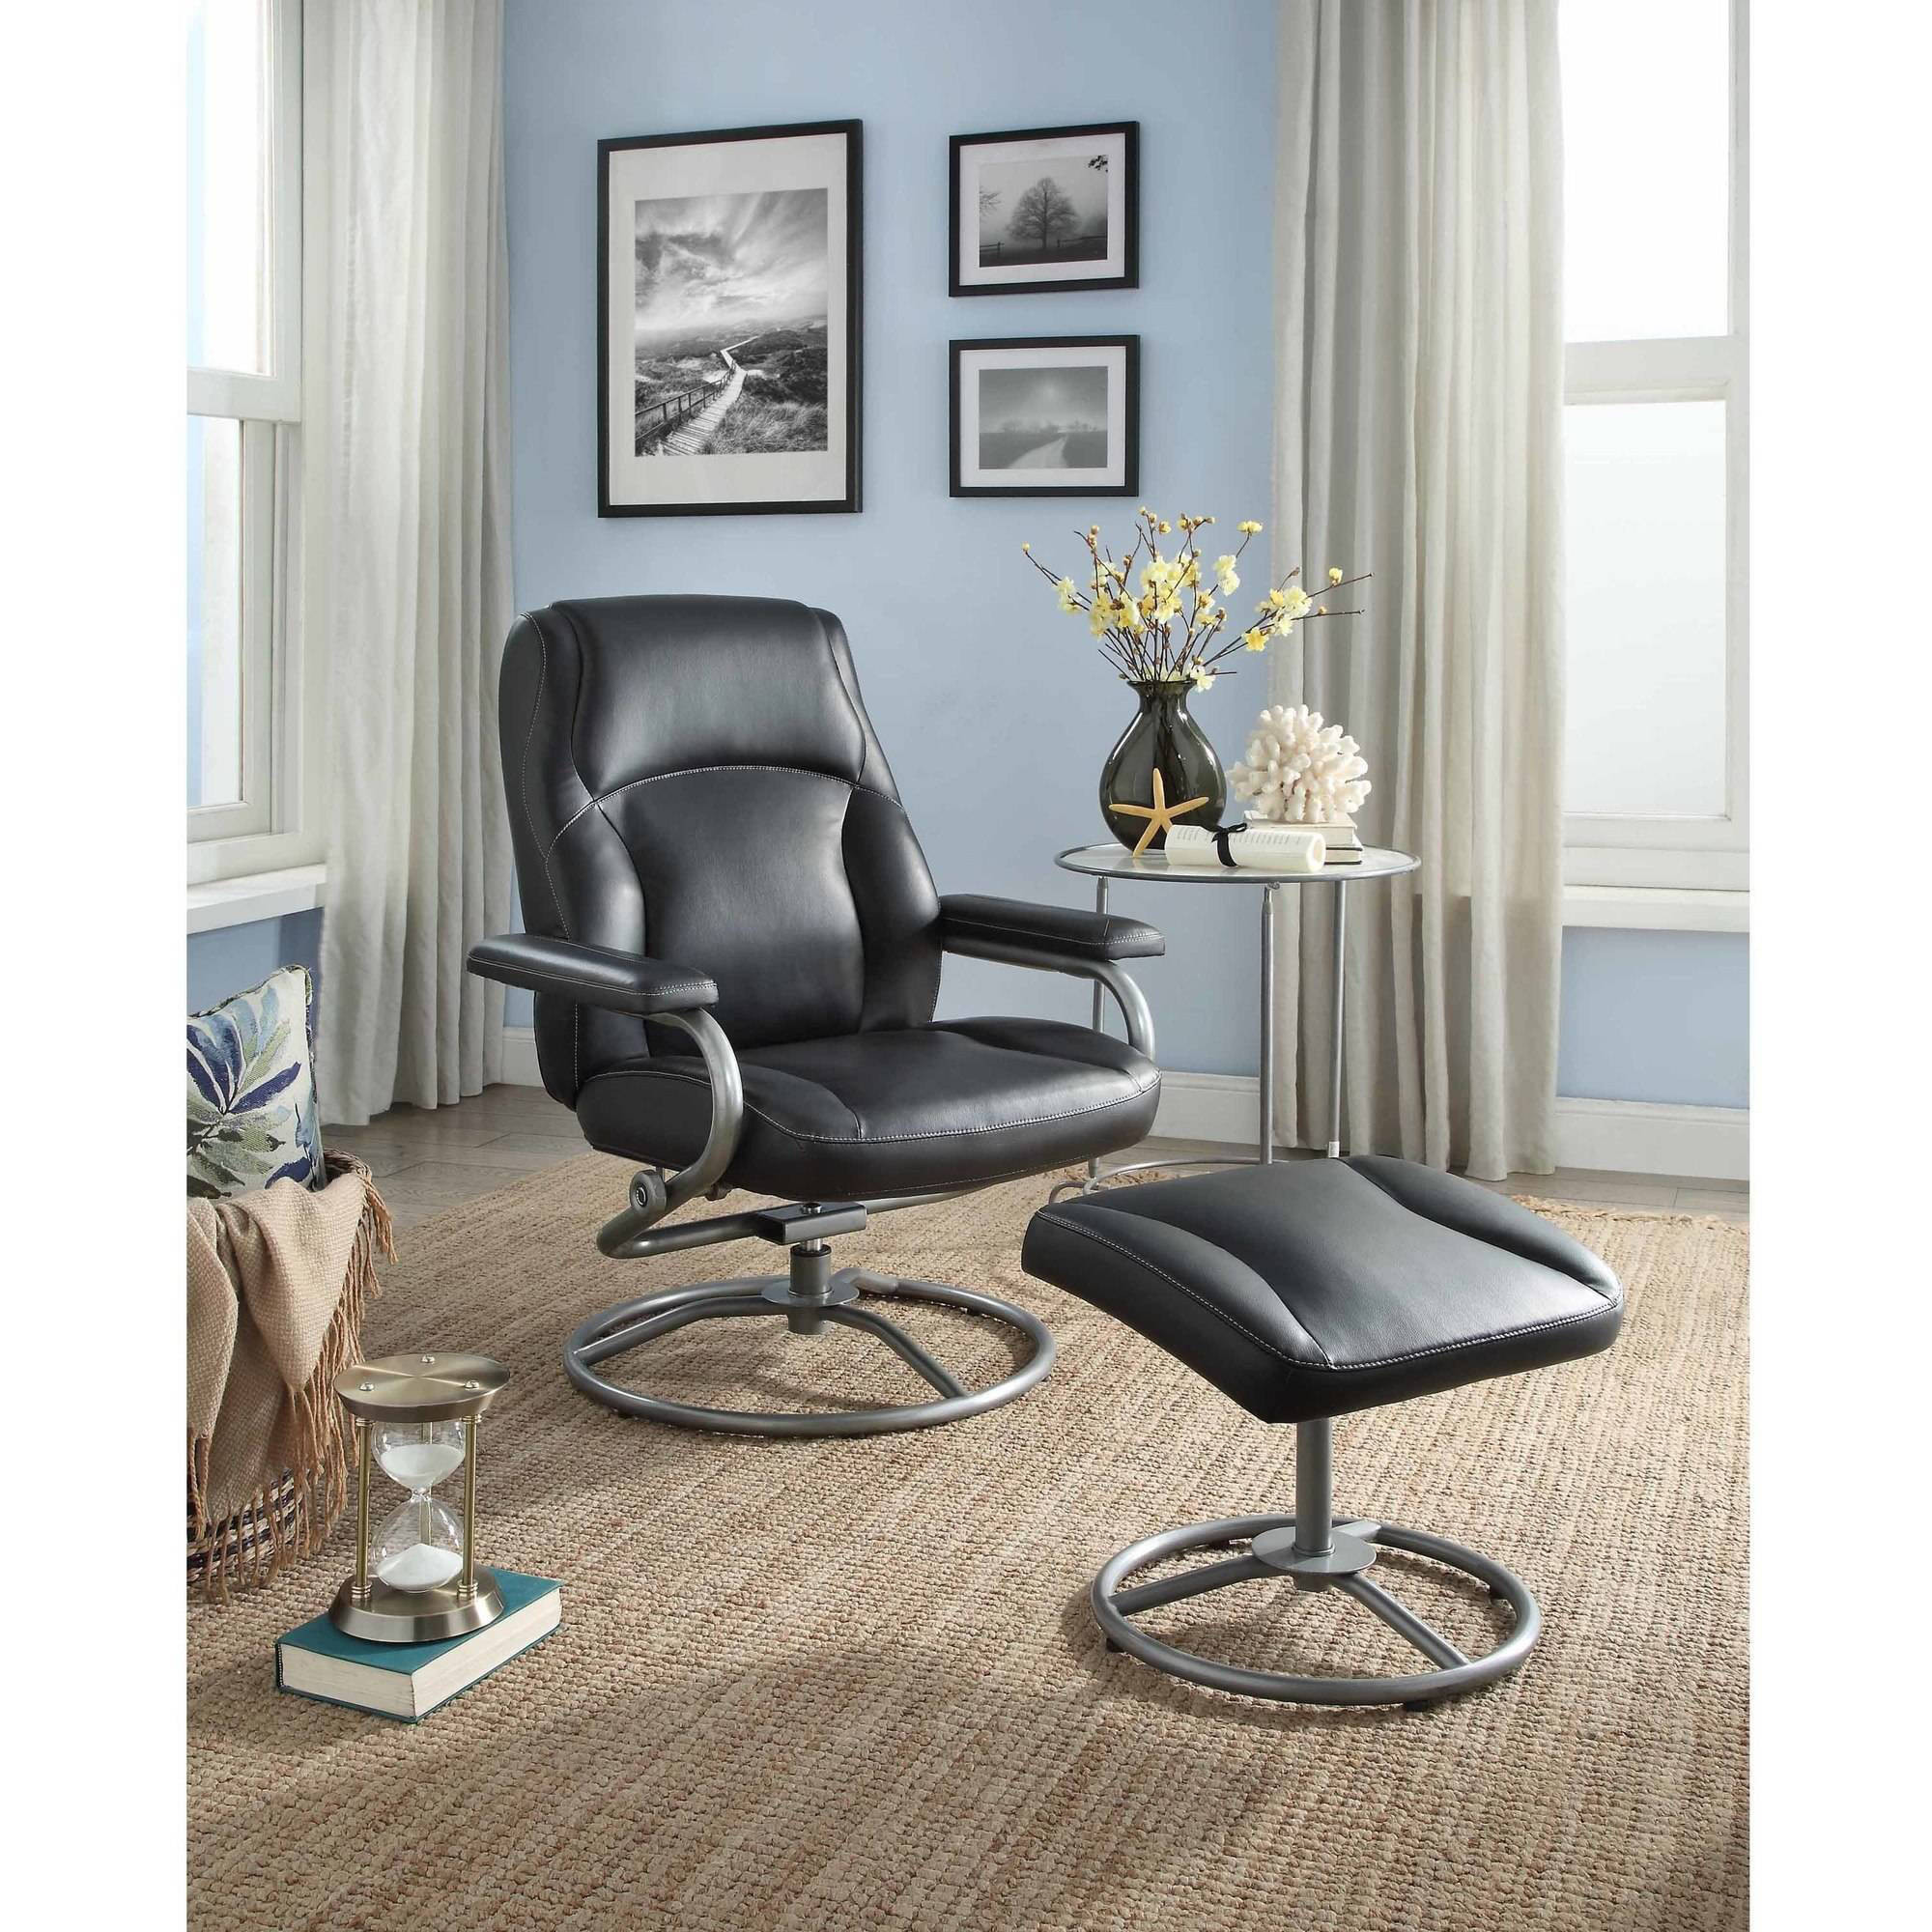 ebay hardwood flooring tools of mainstays plush pillowed recliner swivel chair and ottoman set intended for mainstays plush pillowed recliner swivel chair and ottoman set vinyl multiple colors walmart com